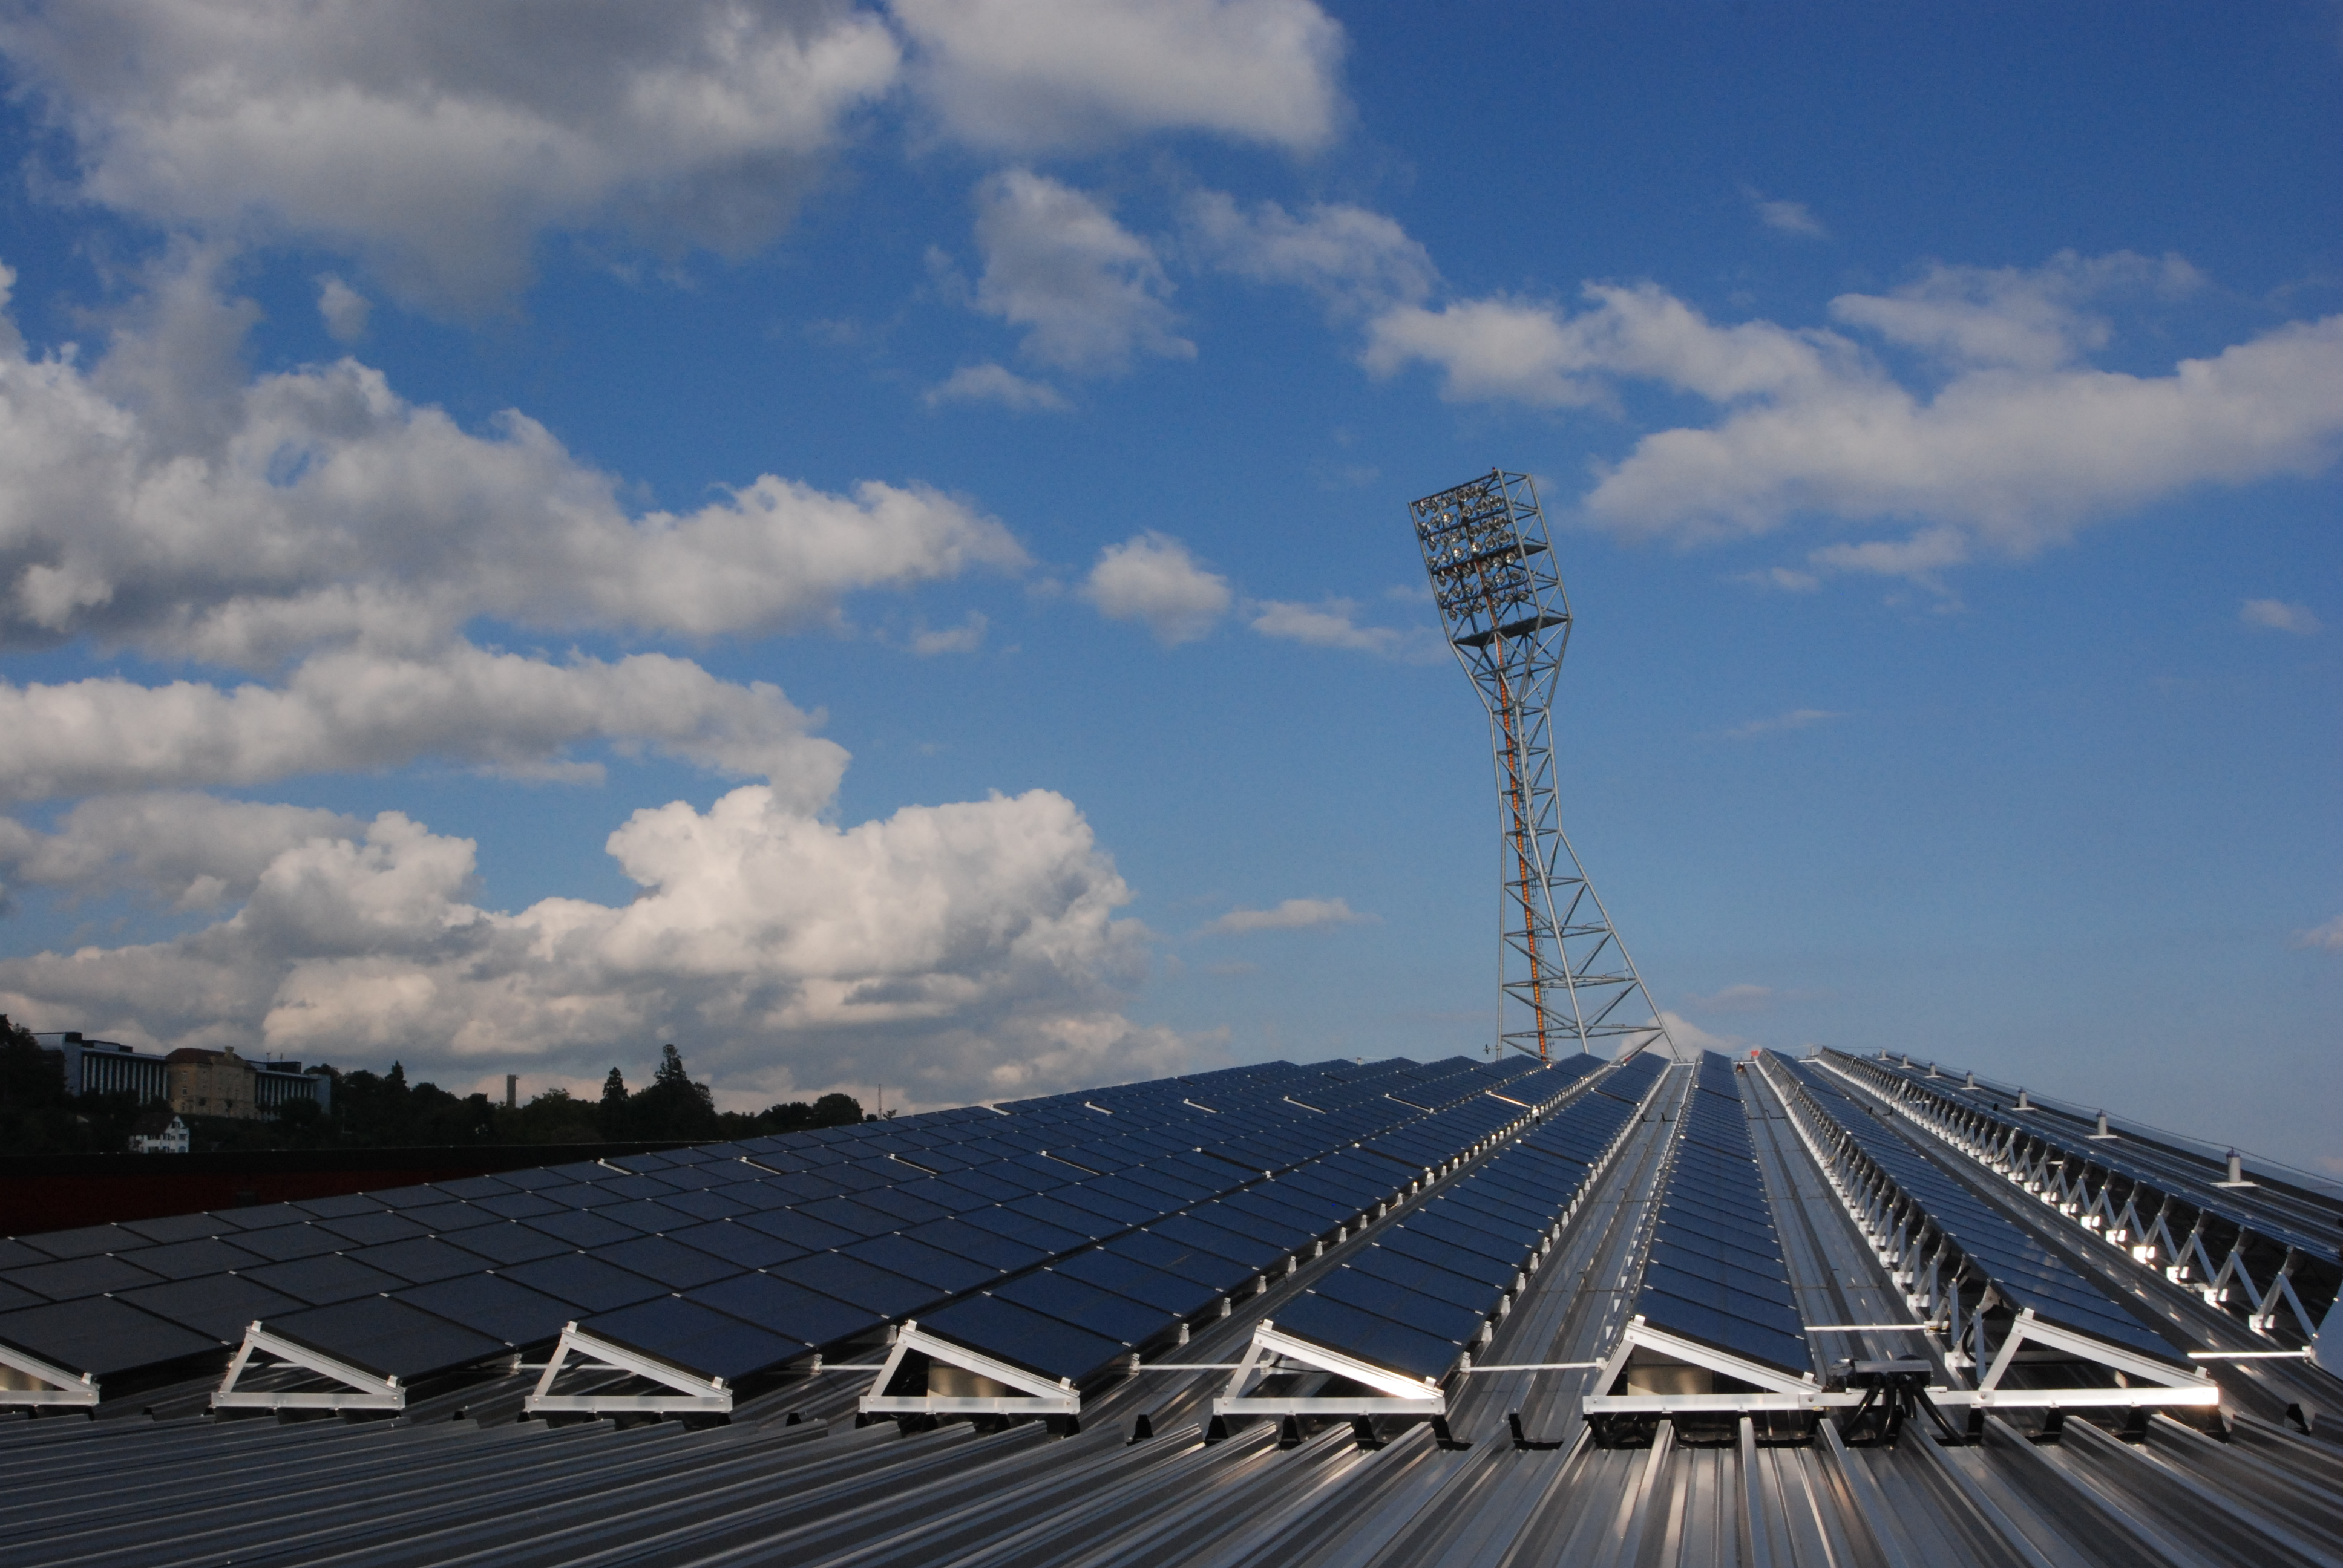 Picture 3 - The rows  of PV panels on the  roof of the stadium